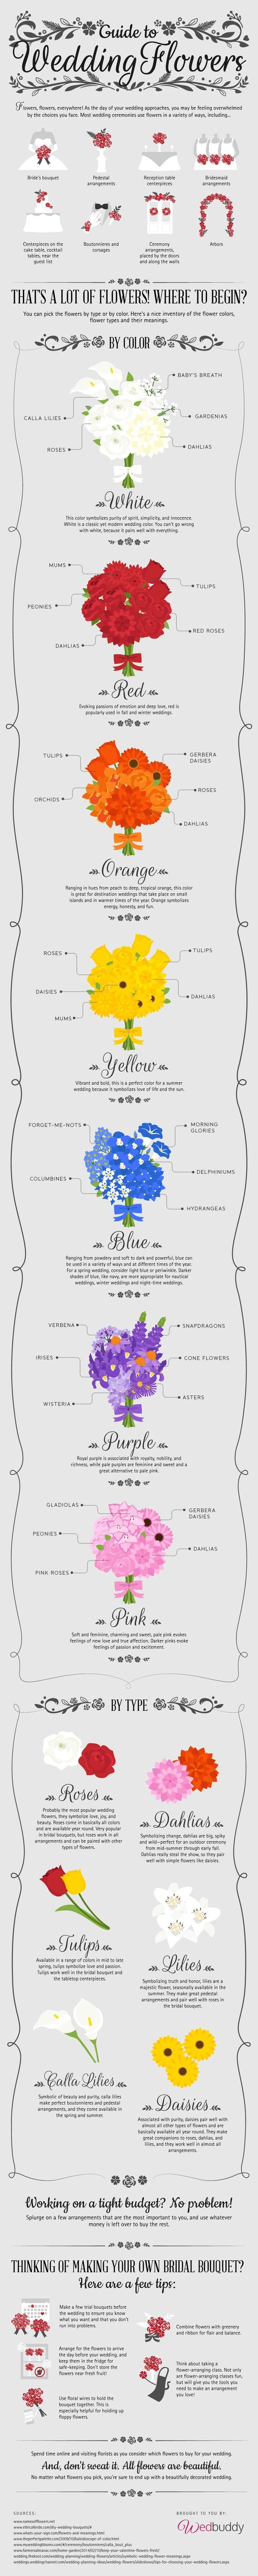 Events by Gia found another great Chart about Flowers. #atlanta #eventstyling #eventsbygia #weddingplanning #eventcompany #corporateevent #sherwoodeventhall #atlantavenues #partyideas #weddingideas #flowerideas #weddingflowers #weddingbouquets